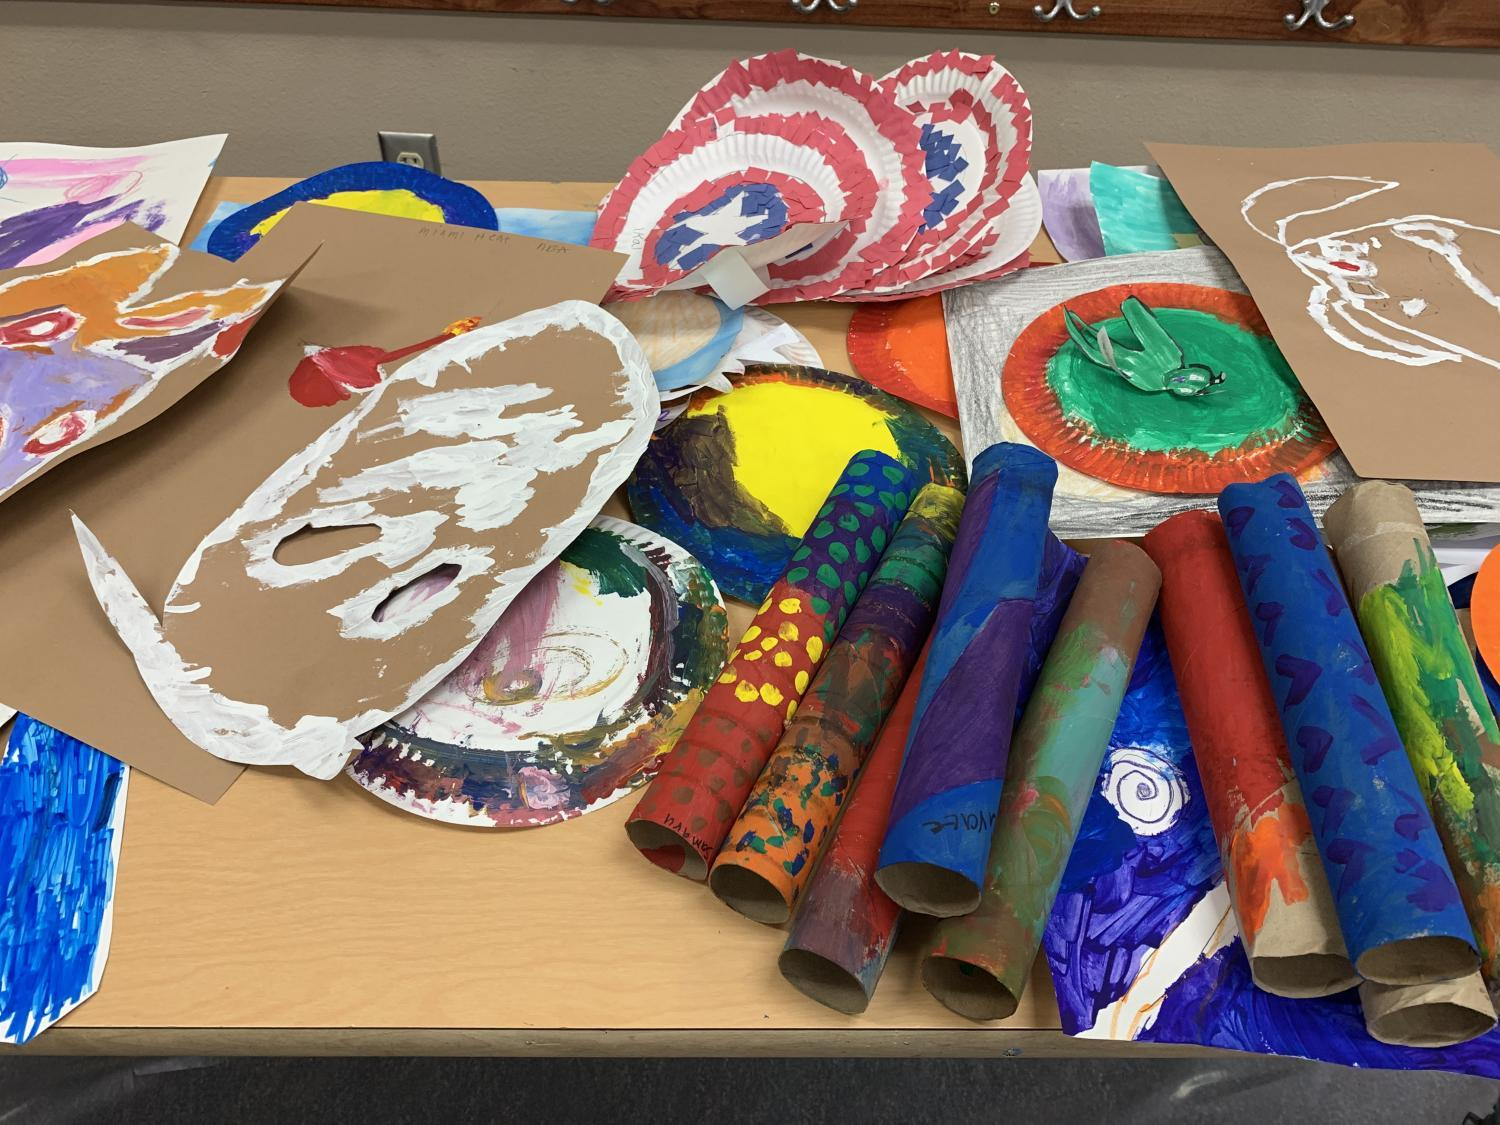 Art projects at Camp Challenge